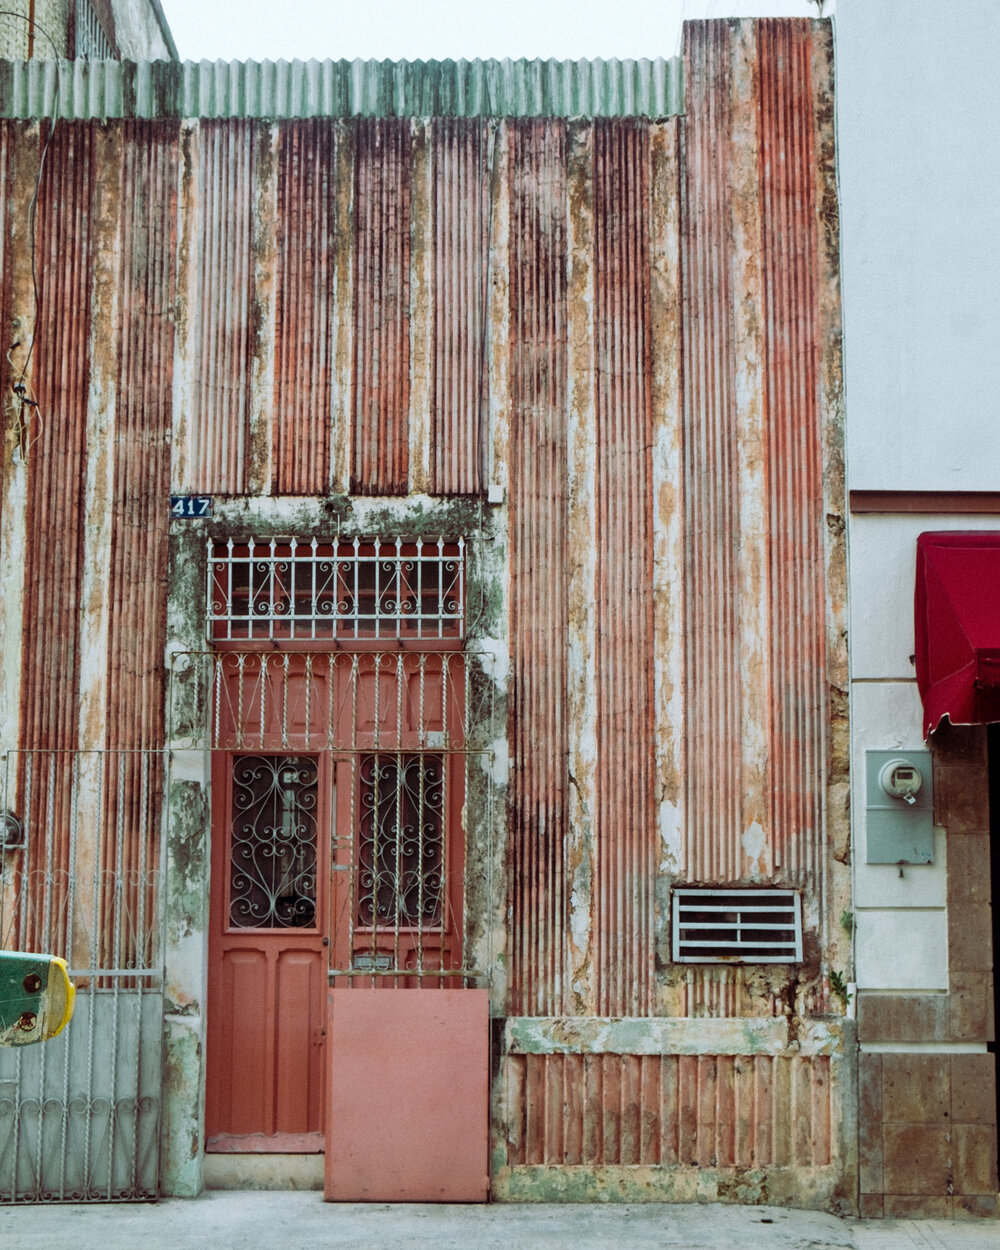 Rachel Off Duty: A Pink and White Striped Building in Merida, Mexico